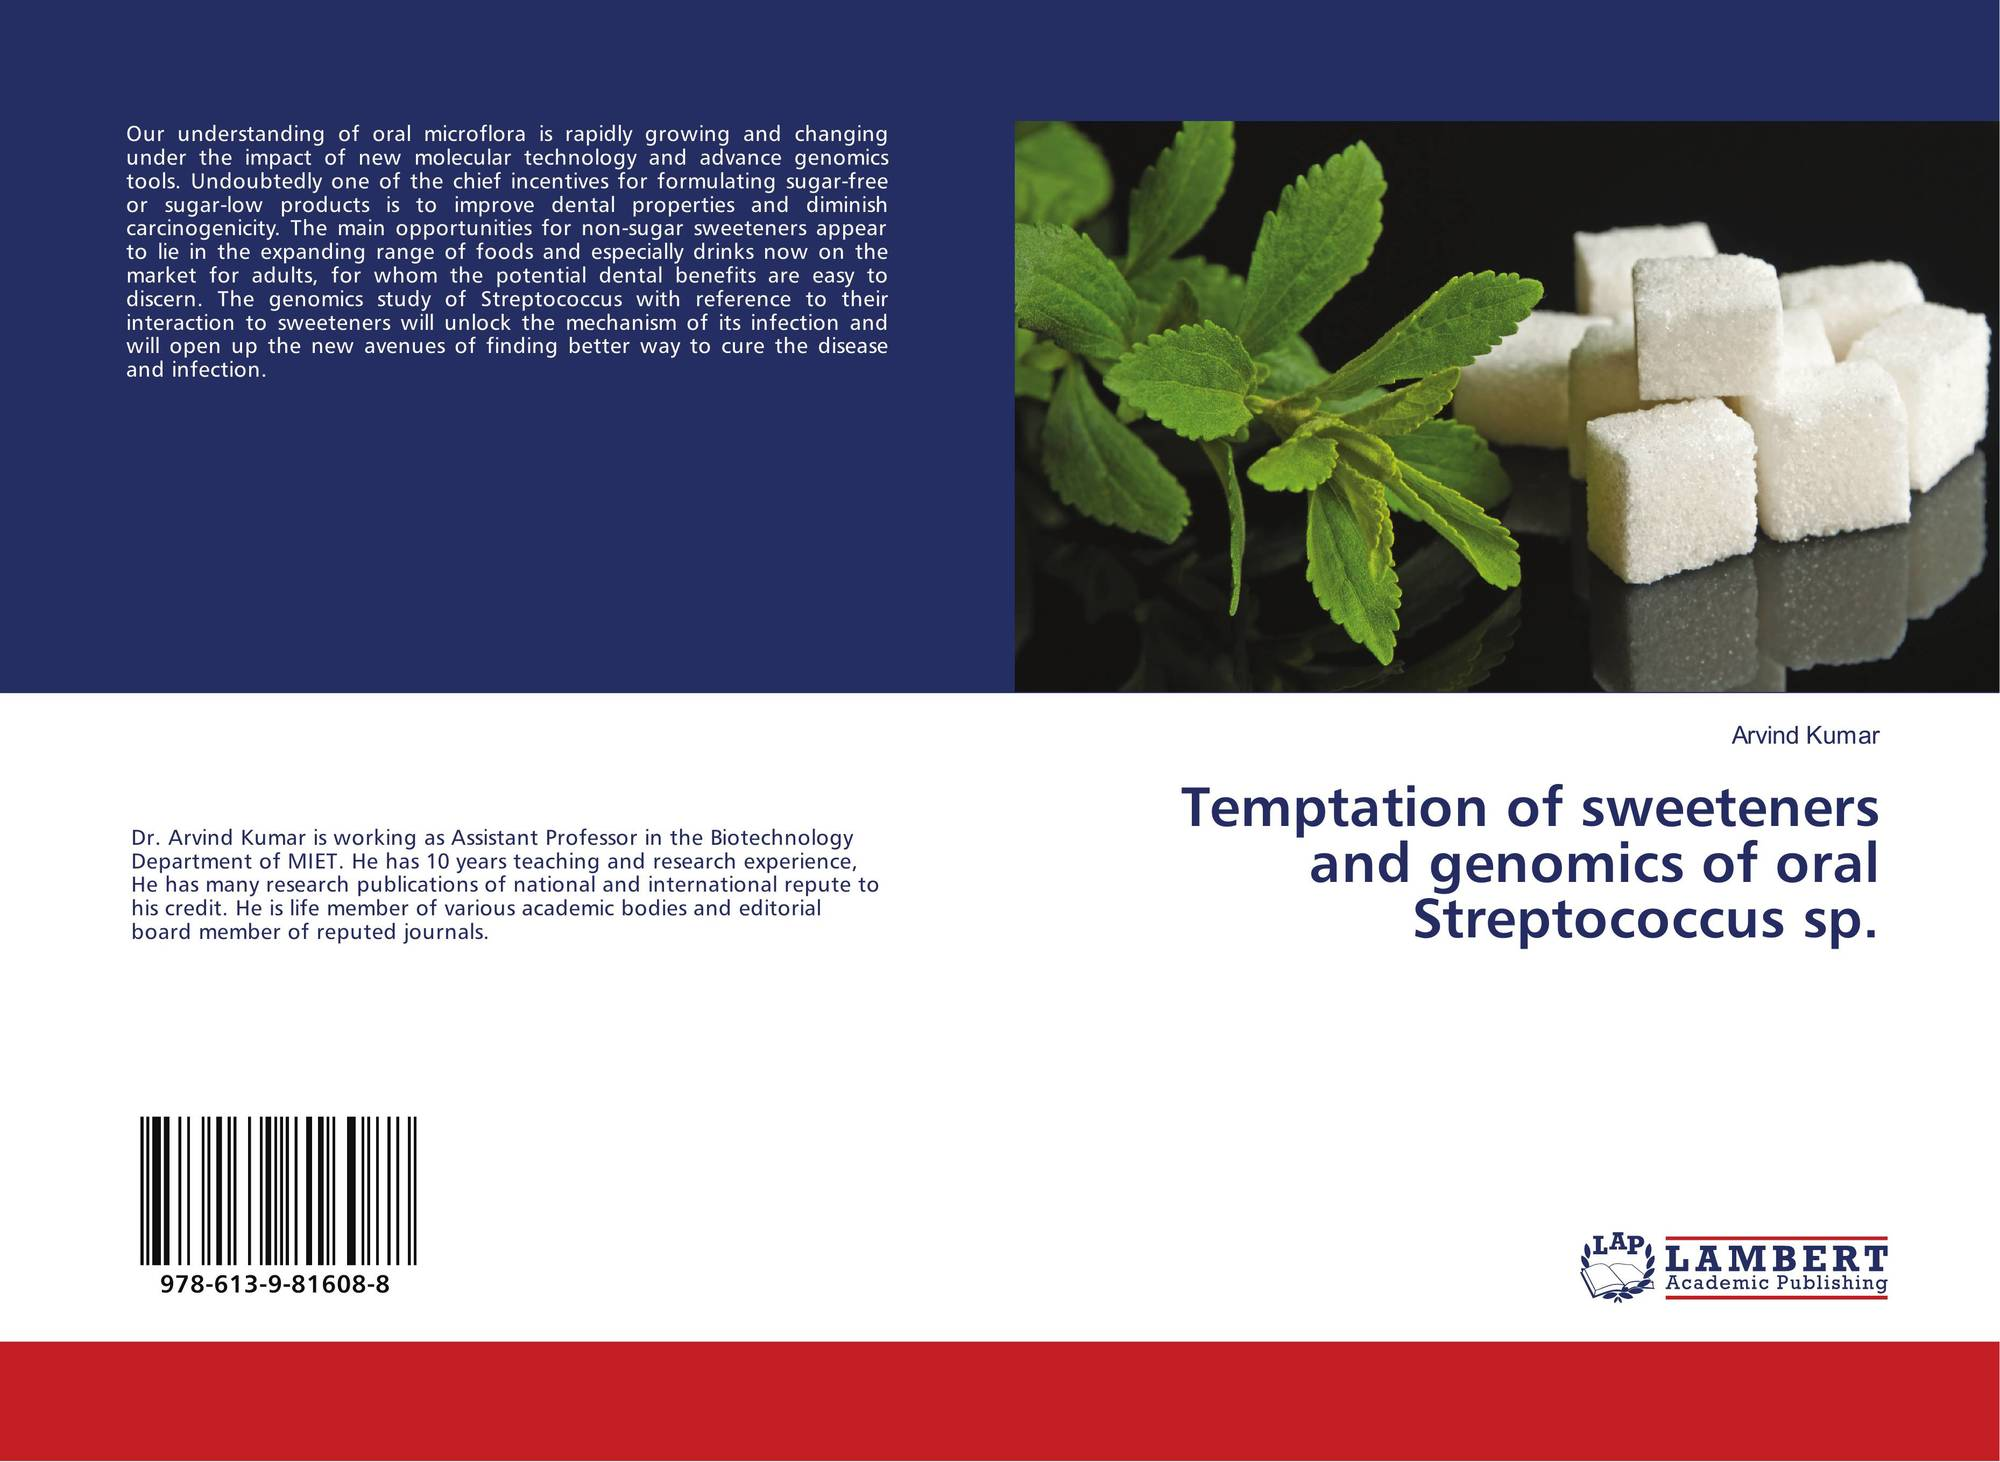 Think, Oral streptococcus